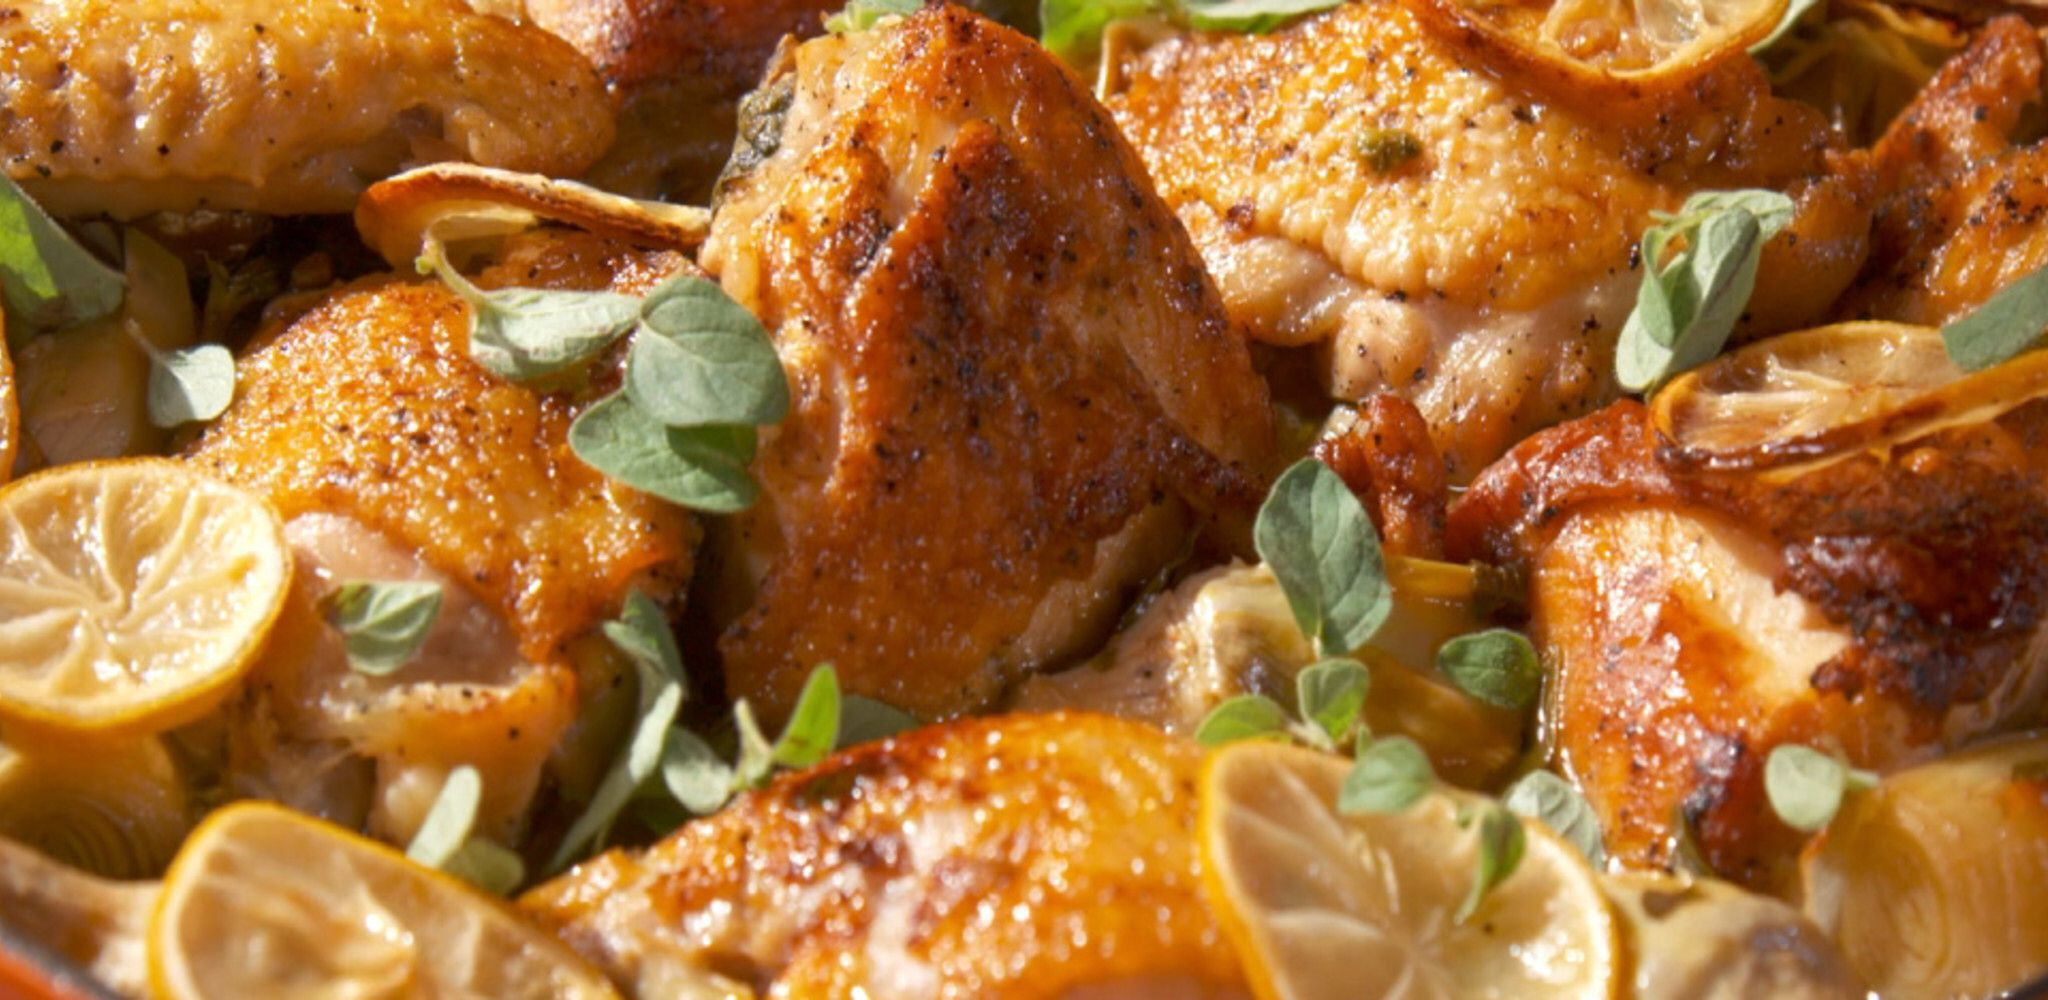 Lemon and Oregano Chicken Recipe in 2020 Food network